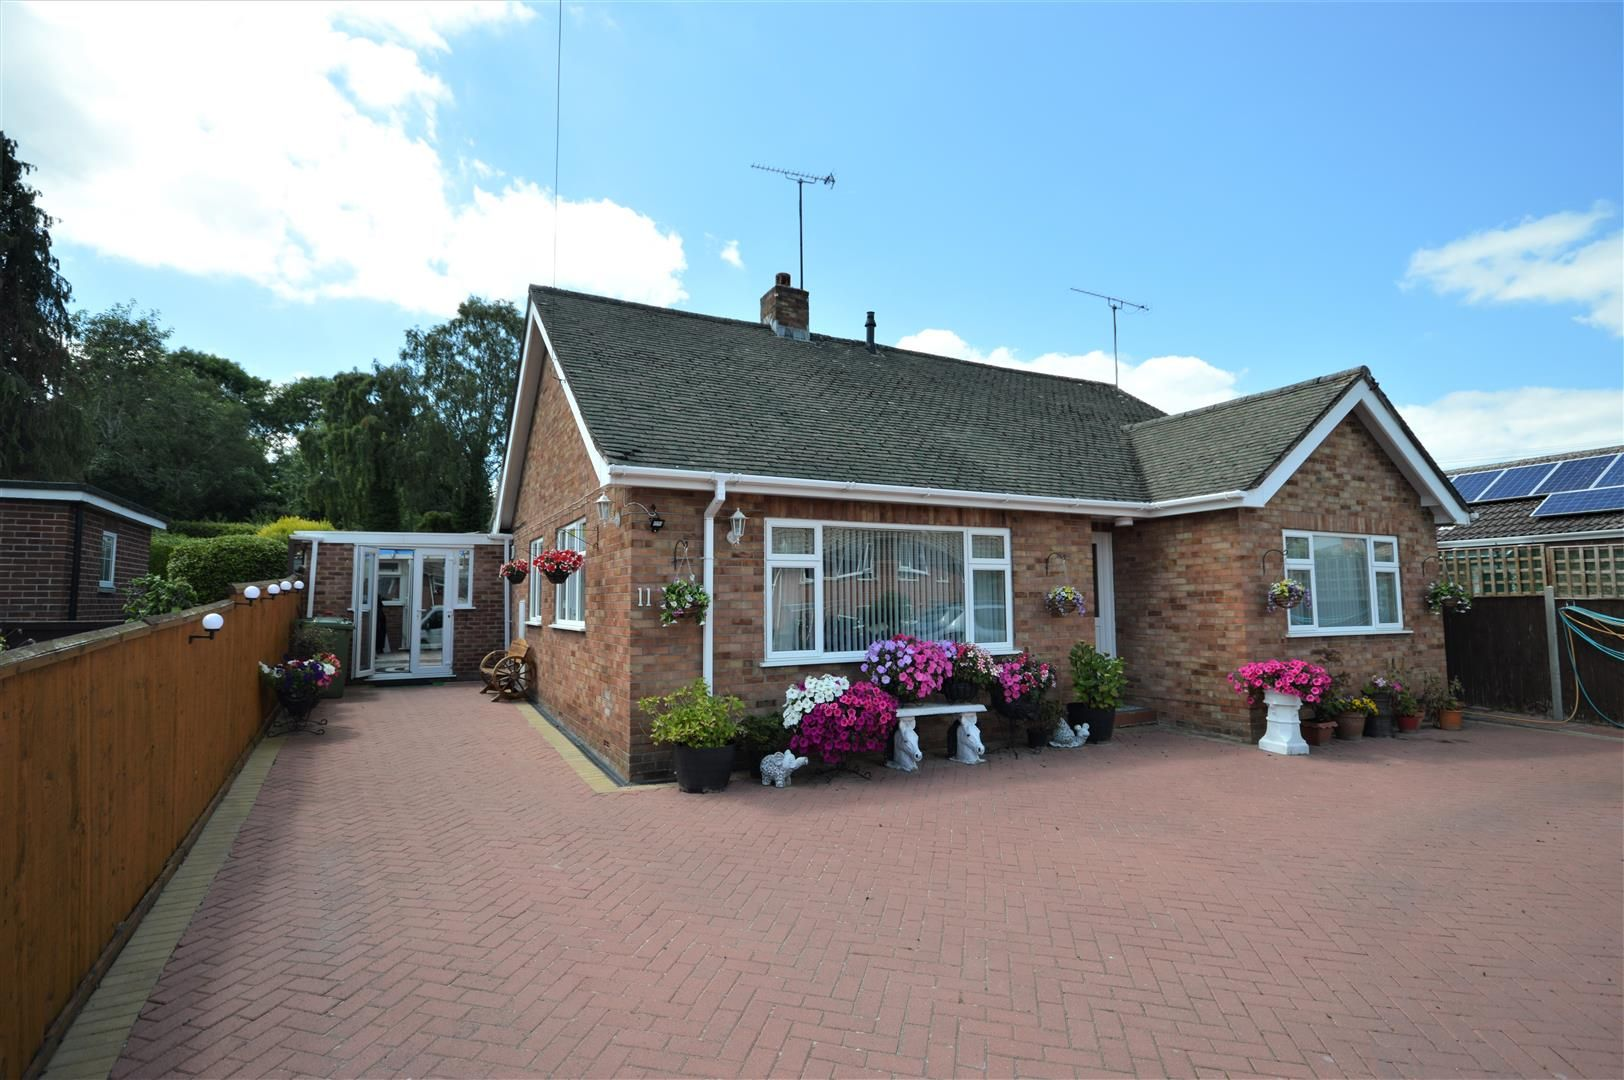 3 bed detached bungalow for sale in Leominster - Property Image 1